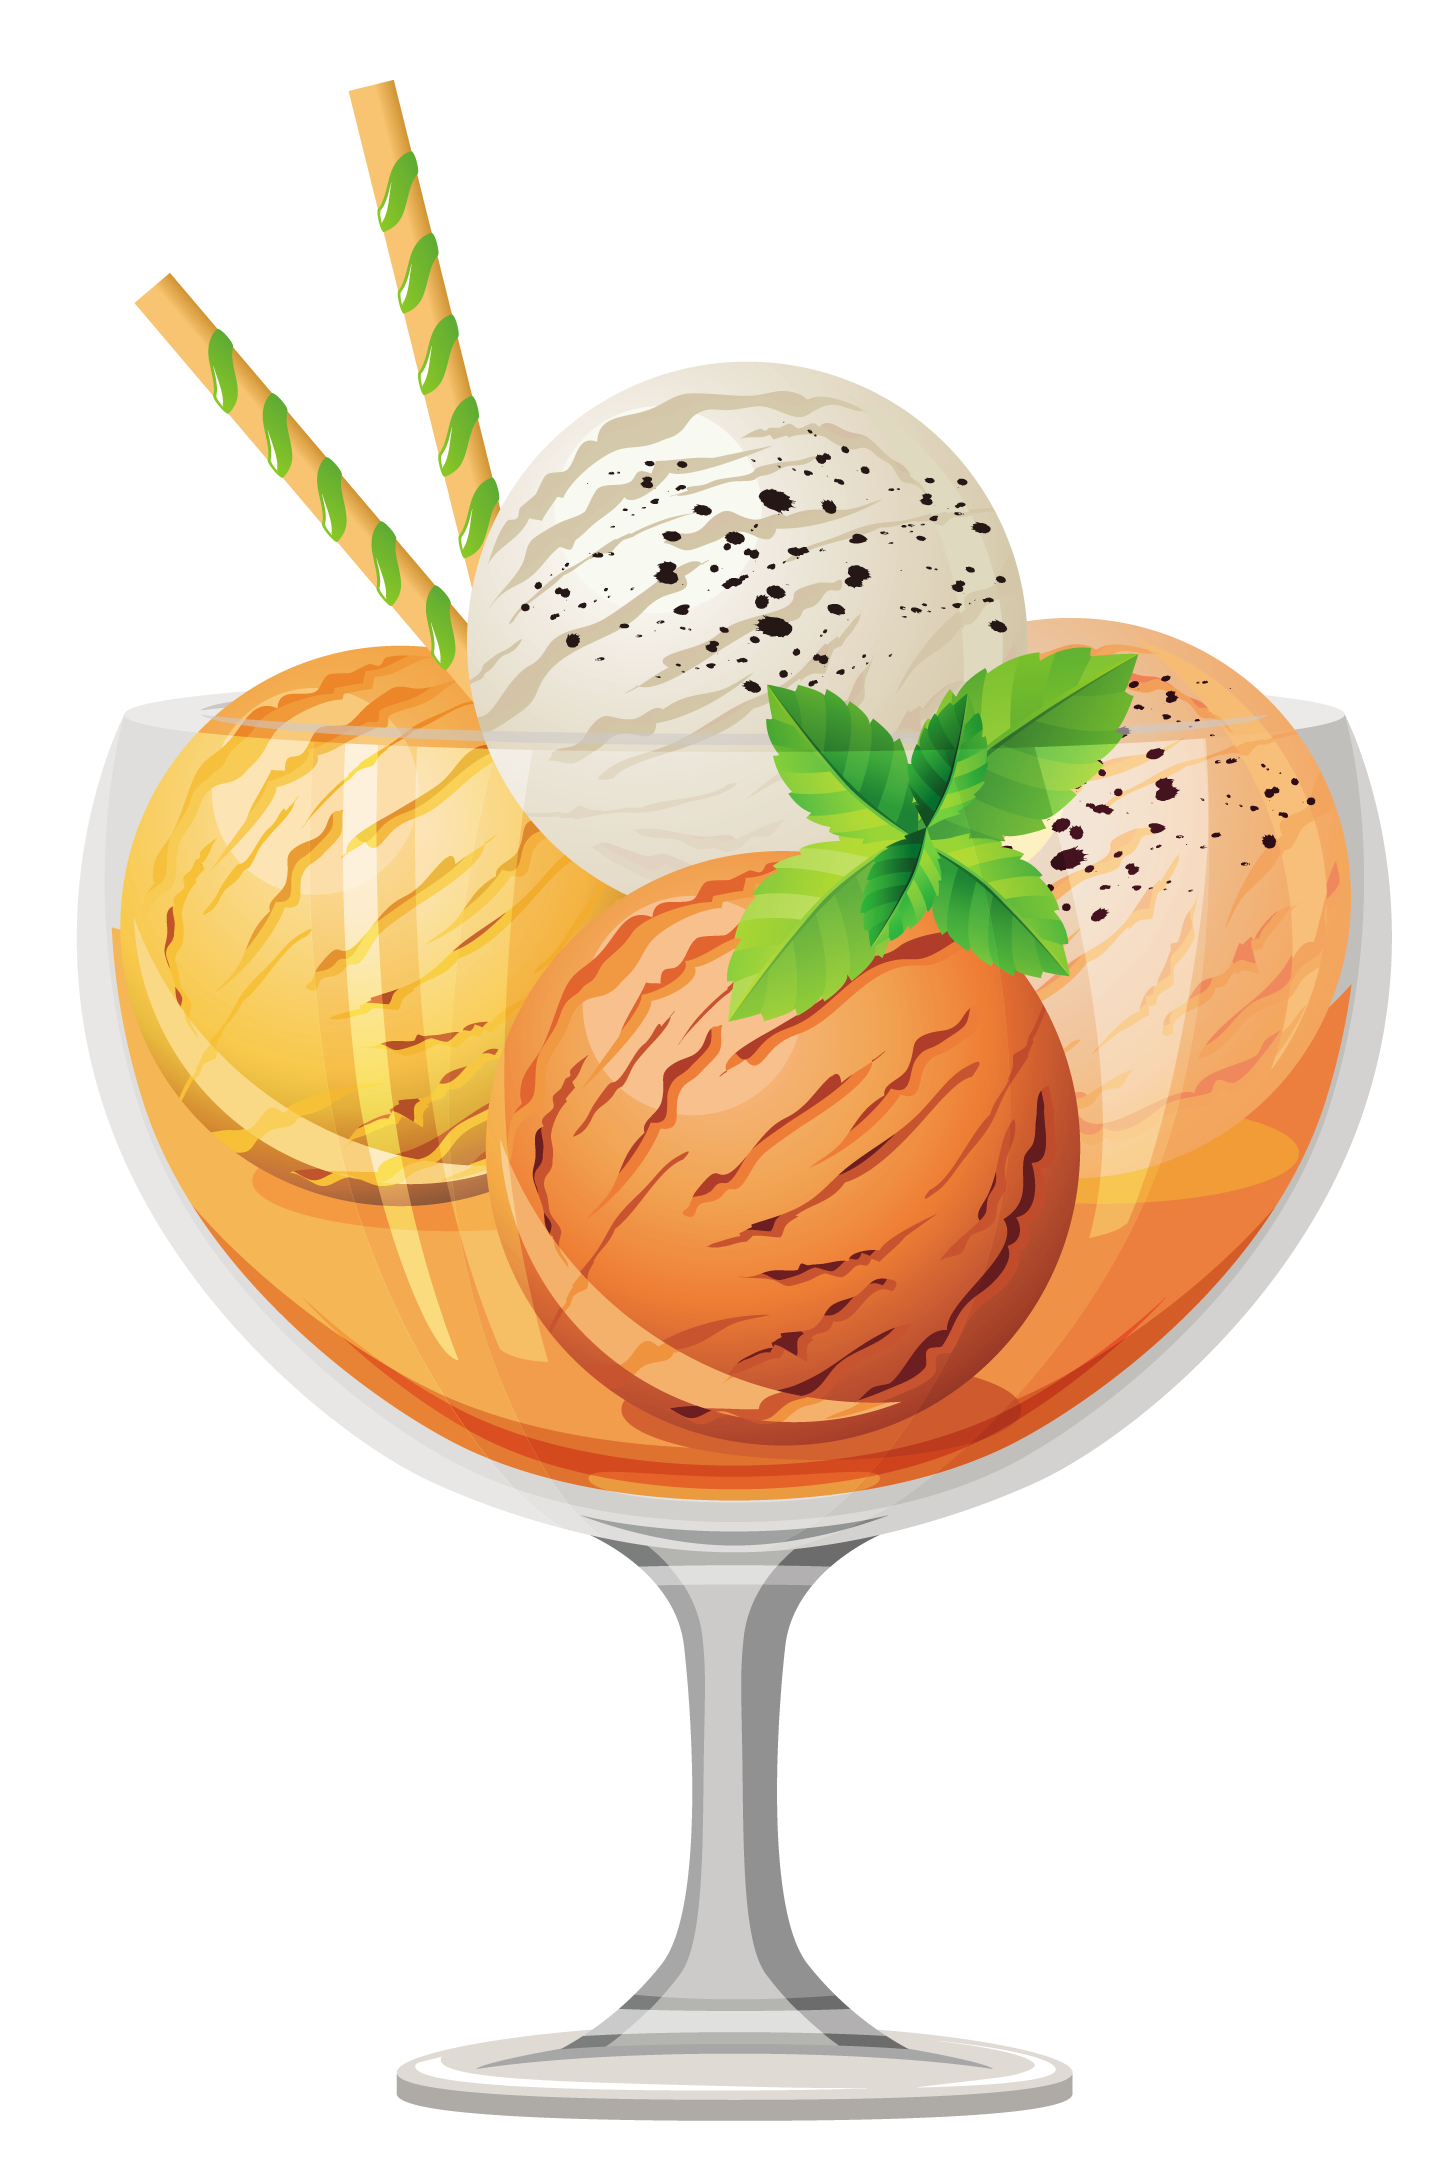 Transparent-ice-cream-sundae-clipart-0